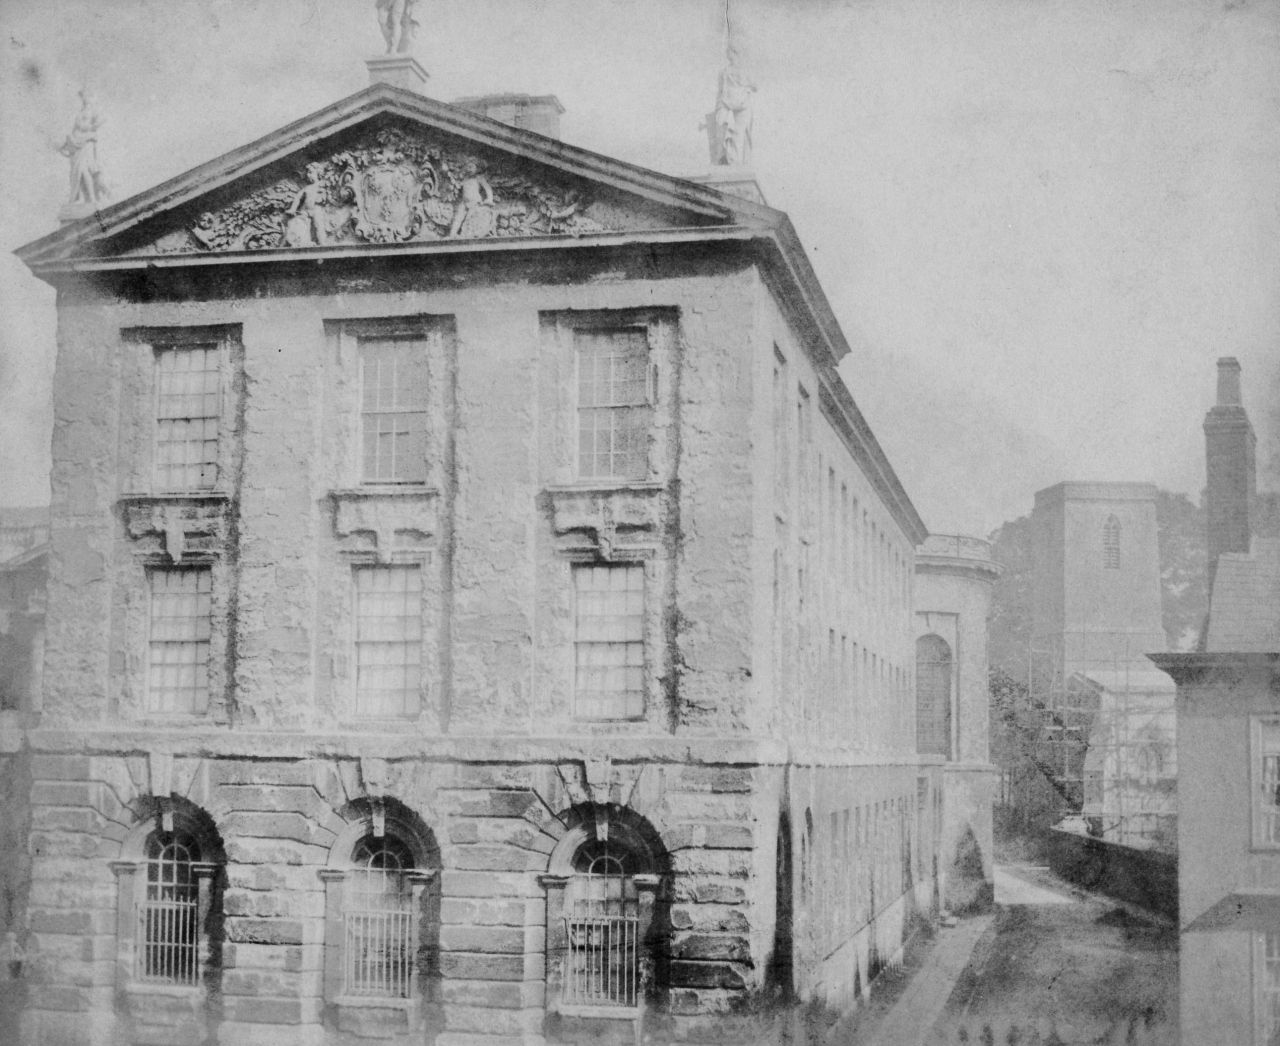 William Henry Fox Talbot: Part of Queens College, Oxford, September 1843